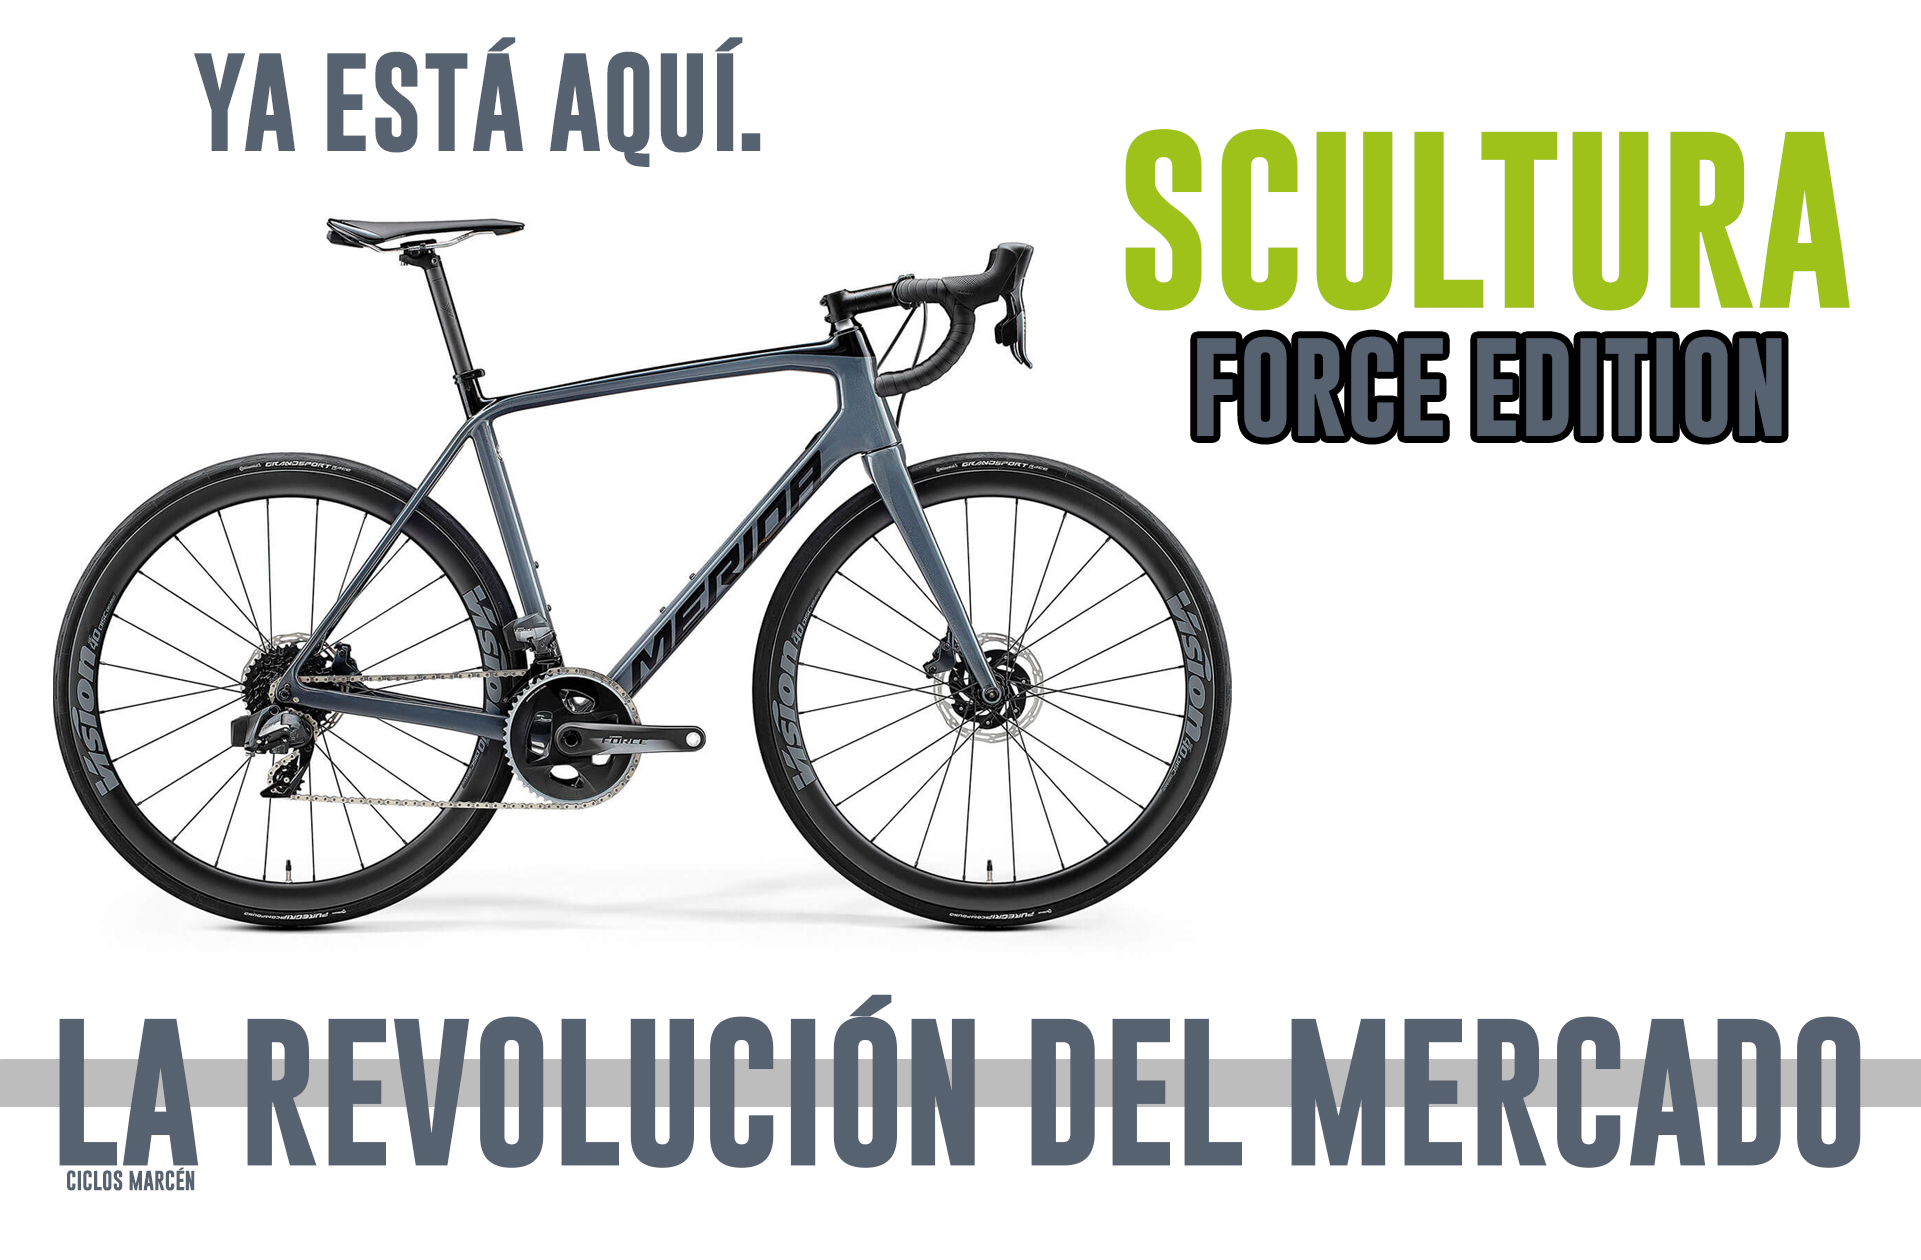 SCULTURA_FORCE_EDITION_CICLOSMARCENMERIDA.jpg